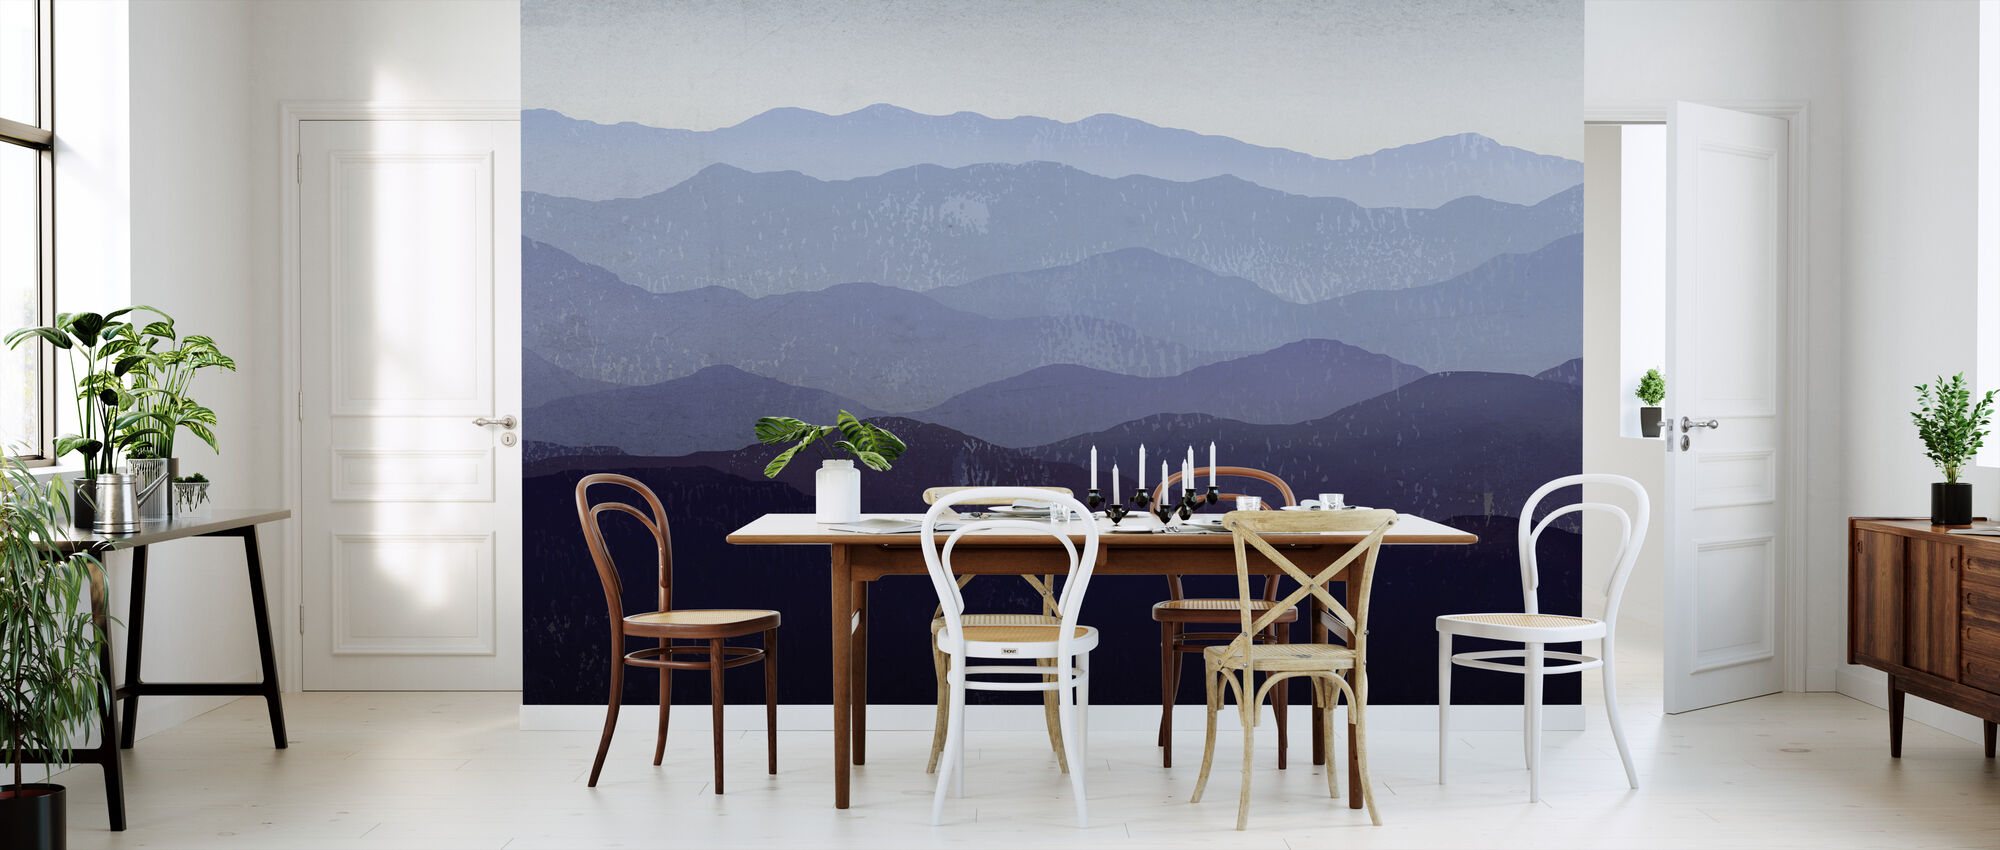 Ryan Fowler - Purple Mountains - Wallpaper - Kitchen